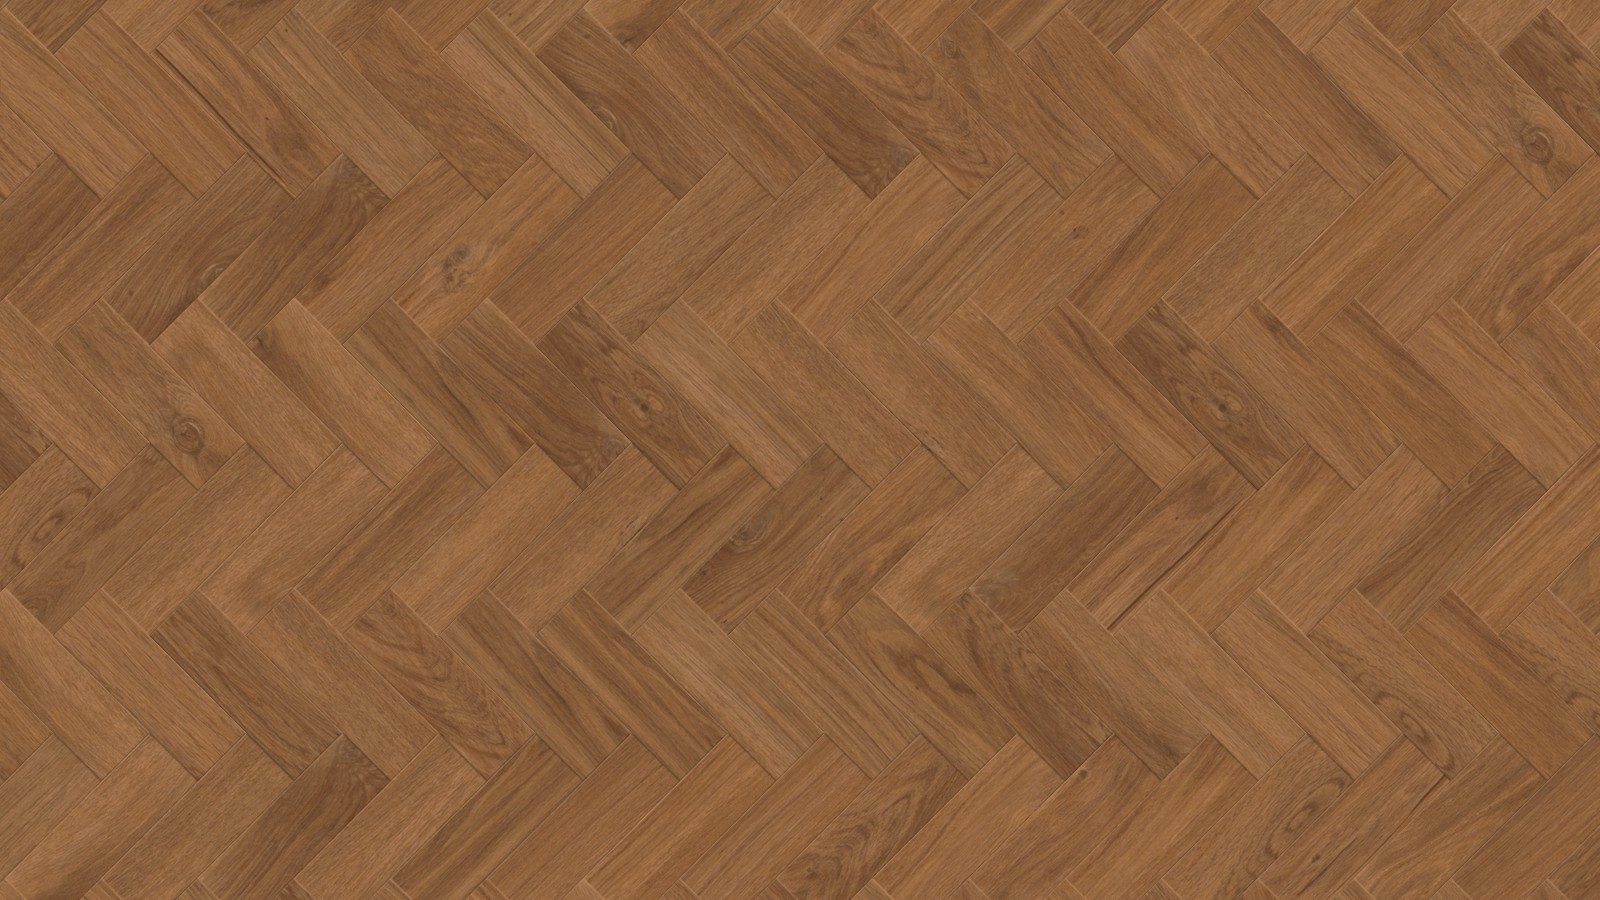 Warm Ginger Parquet